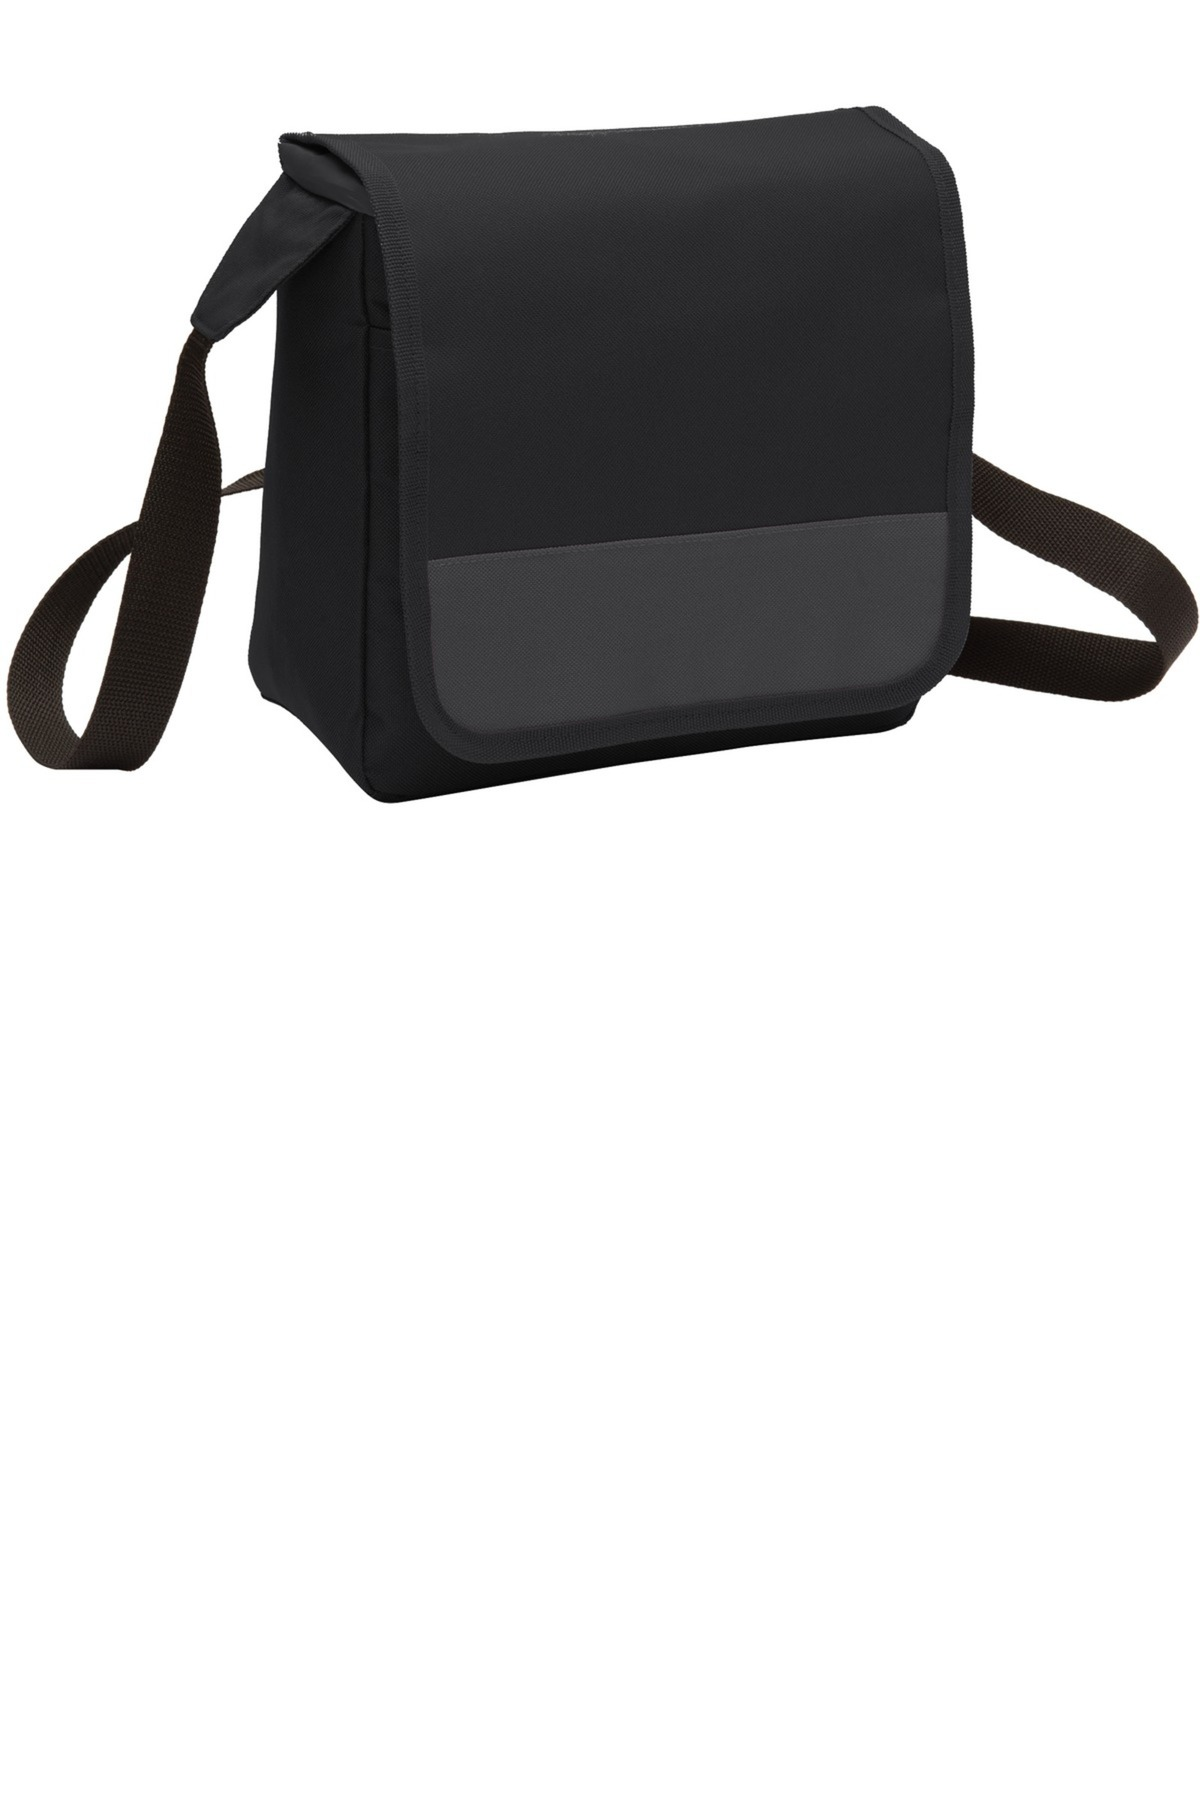 port authority embroidered lunch cooler messenger bags